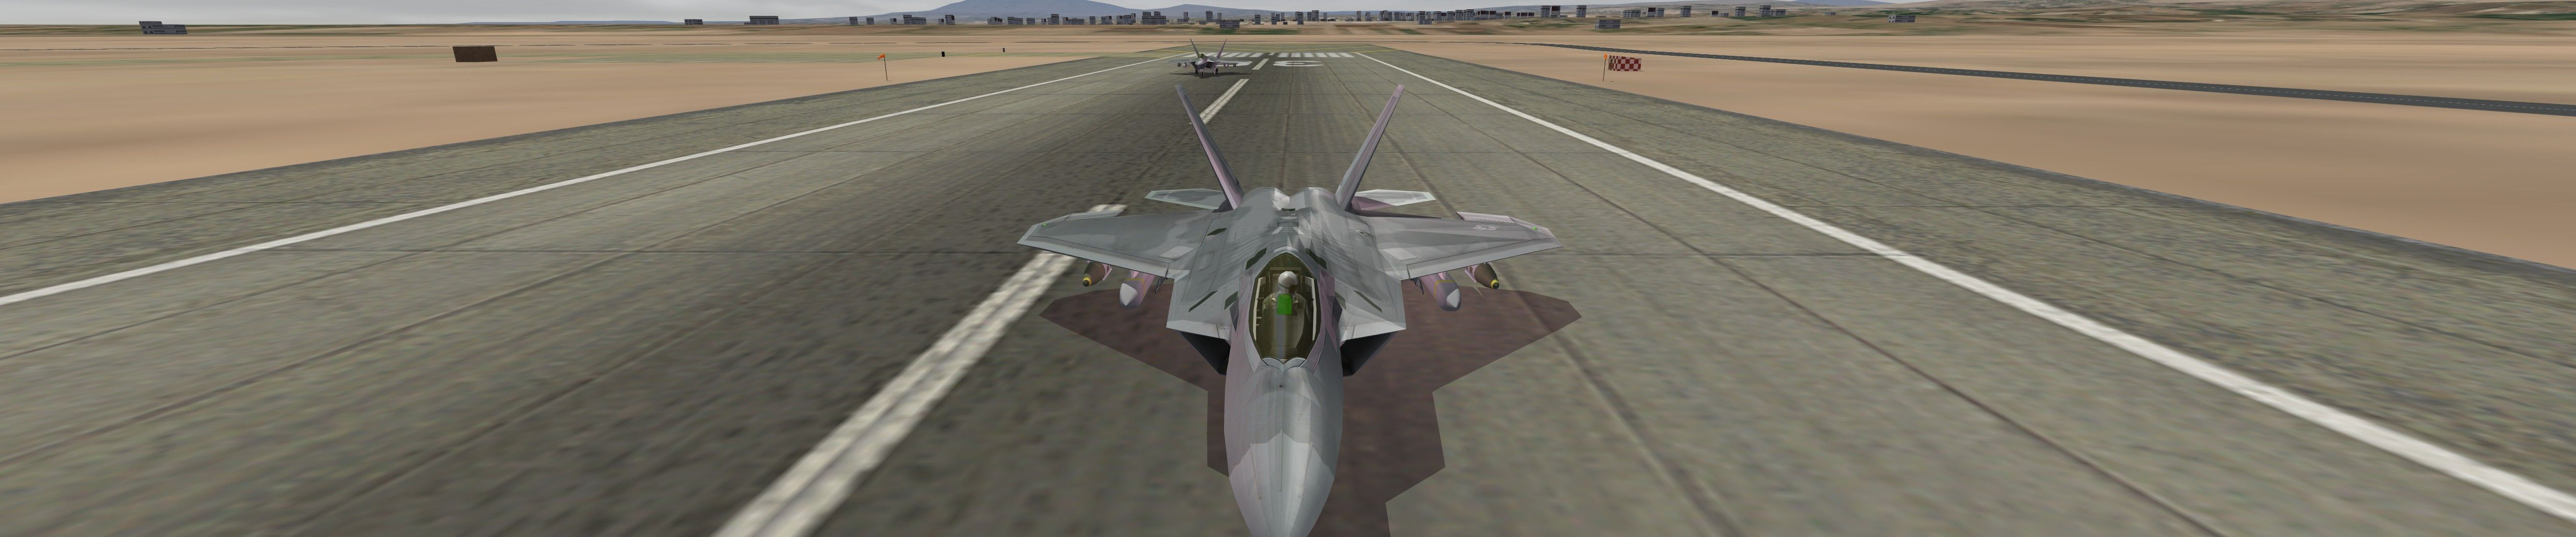 F-22A Raptor Version 2.1 For SF2 Series